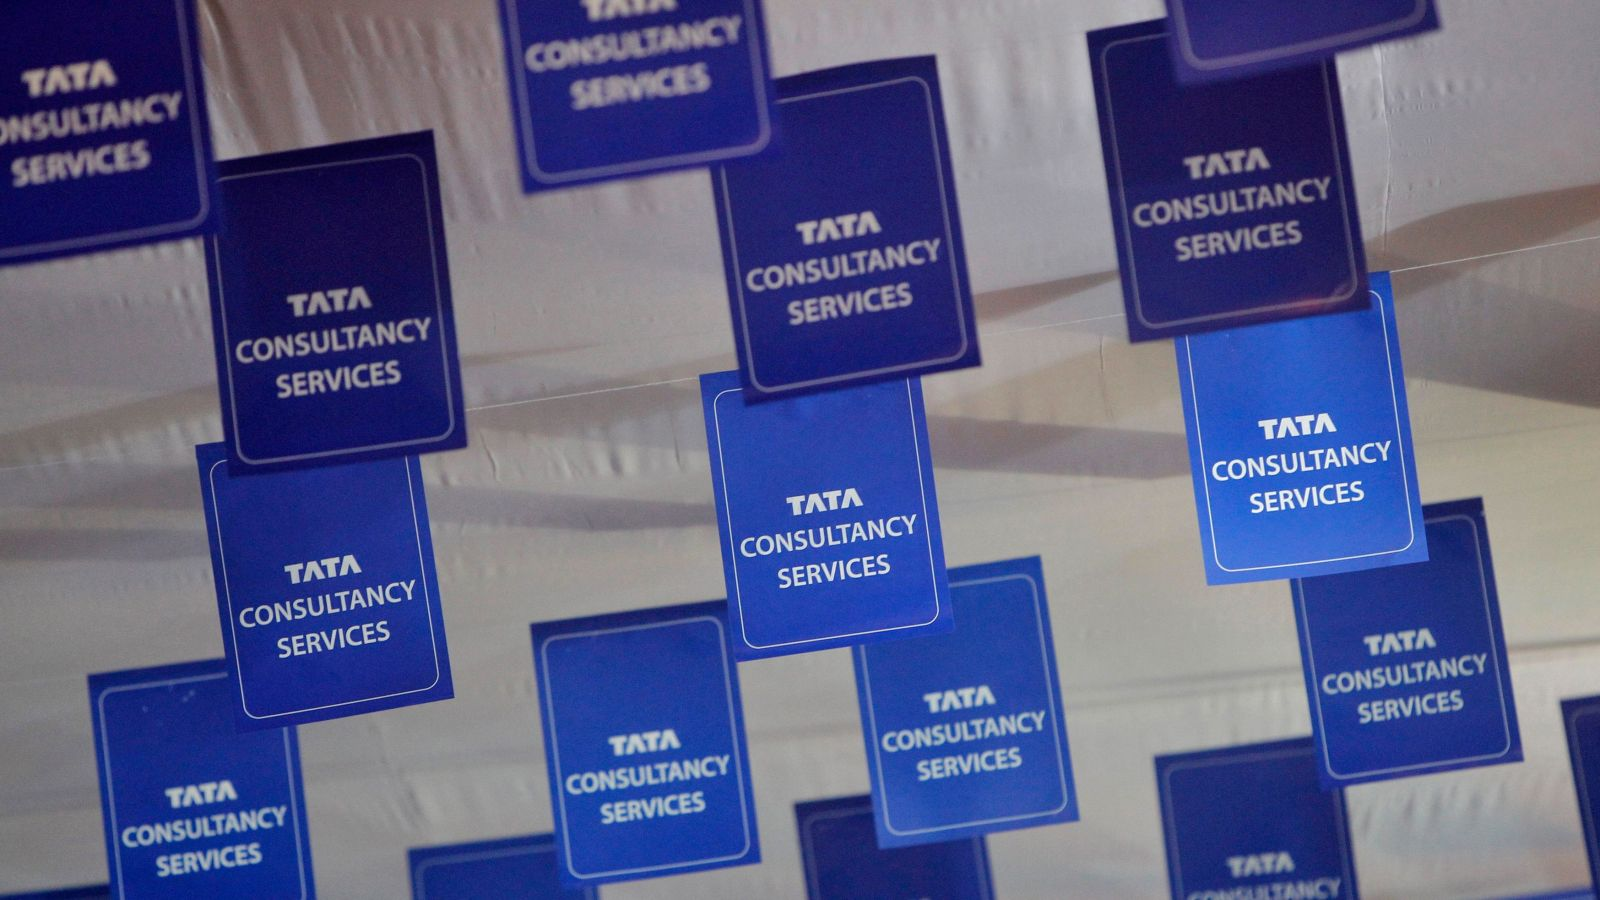 Why TCS is worth $100 billion, and Infosys isn't